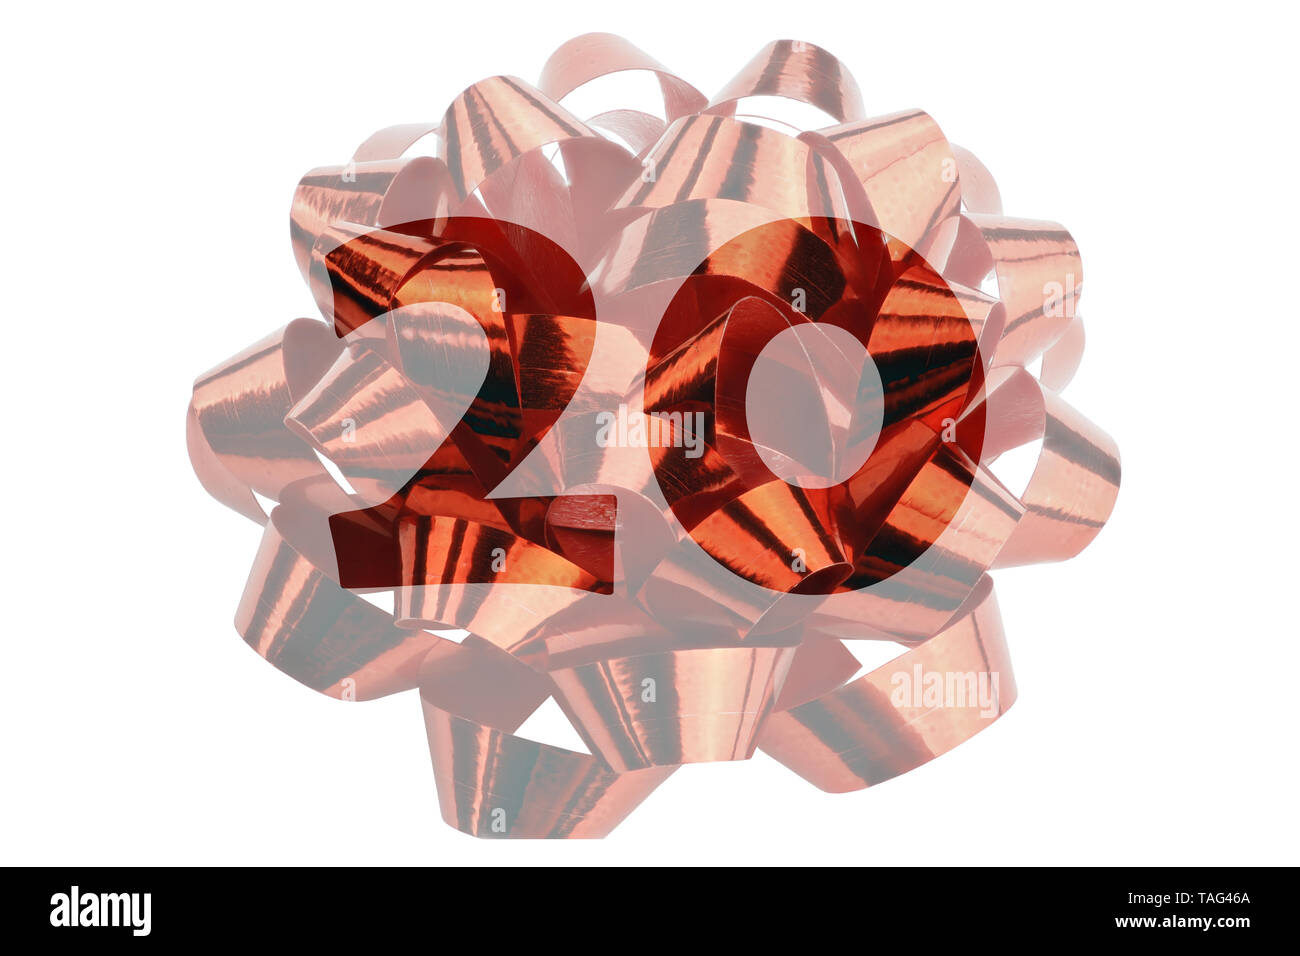 Image of a lightened gift loop made of red gift ribbon with transparent number 20 in original color - Stock Image